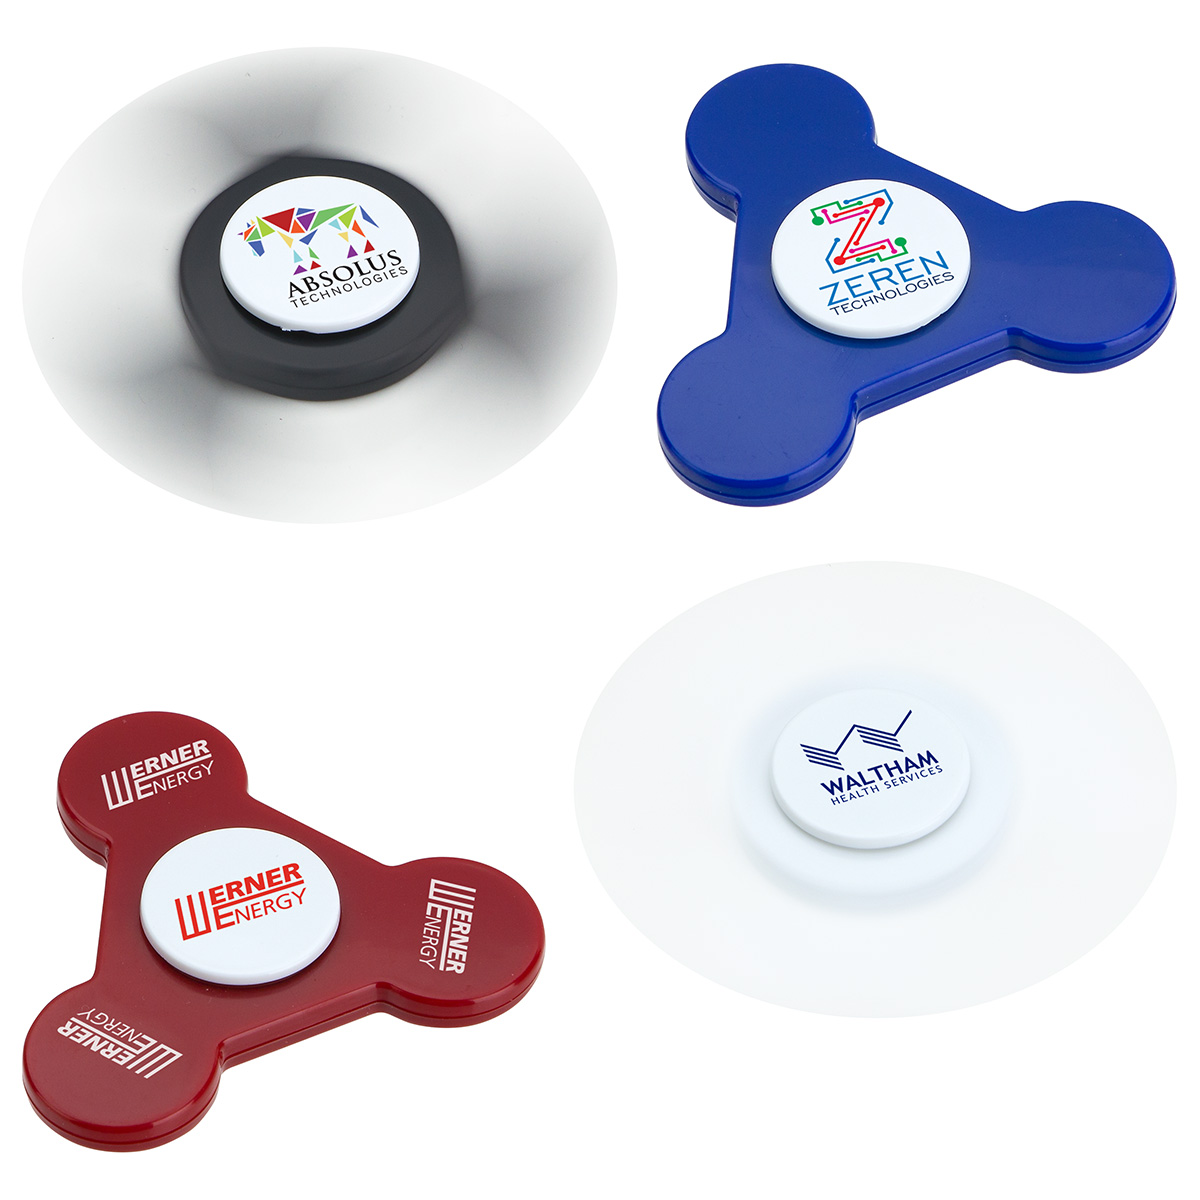 Promo Whirl 2-Minute Spinner, WPC-RW17 - 1 Colour Imprint